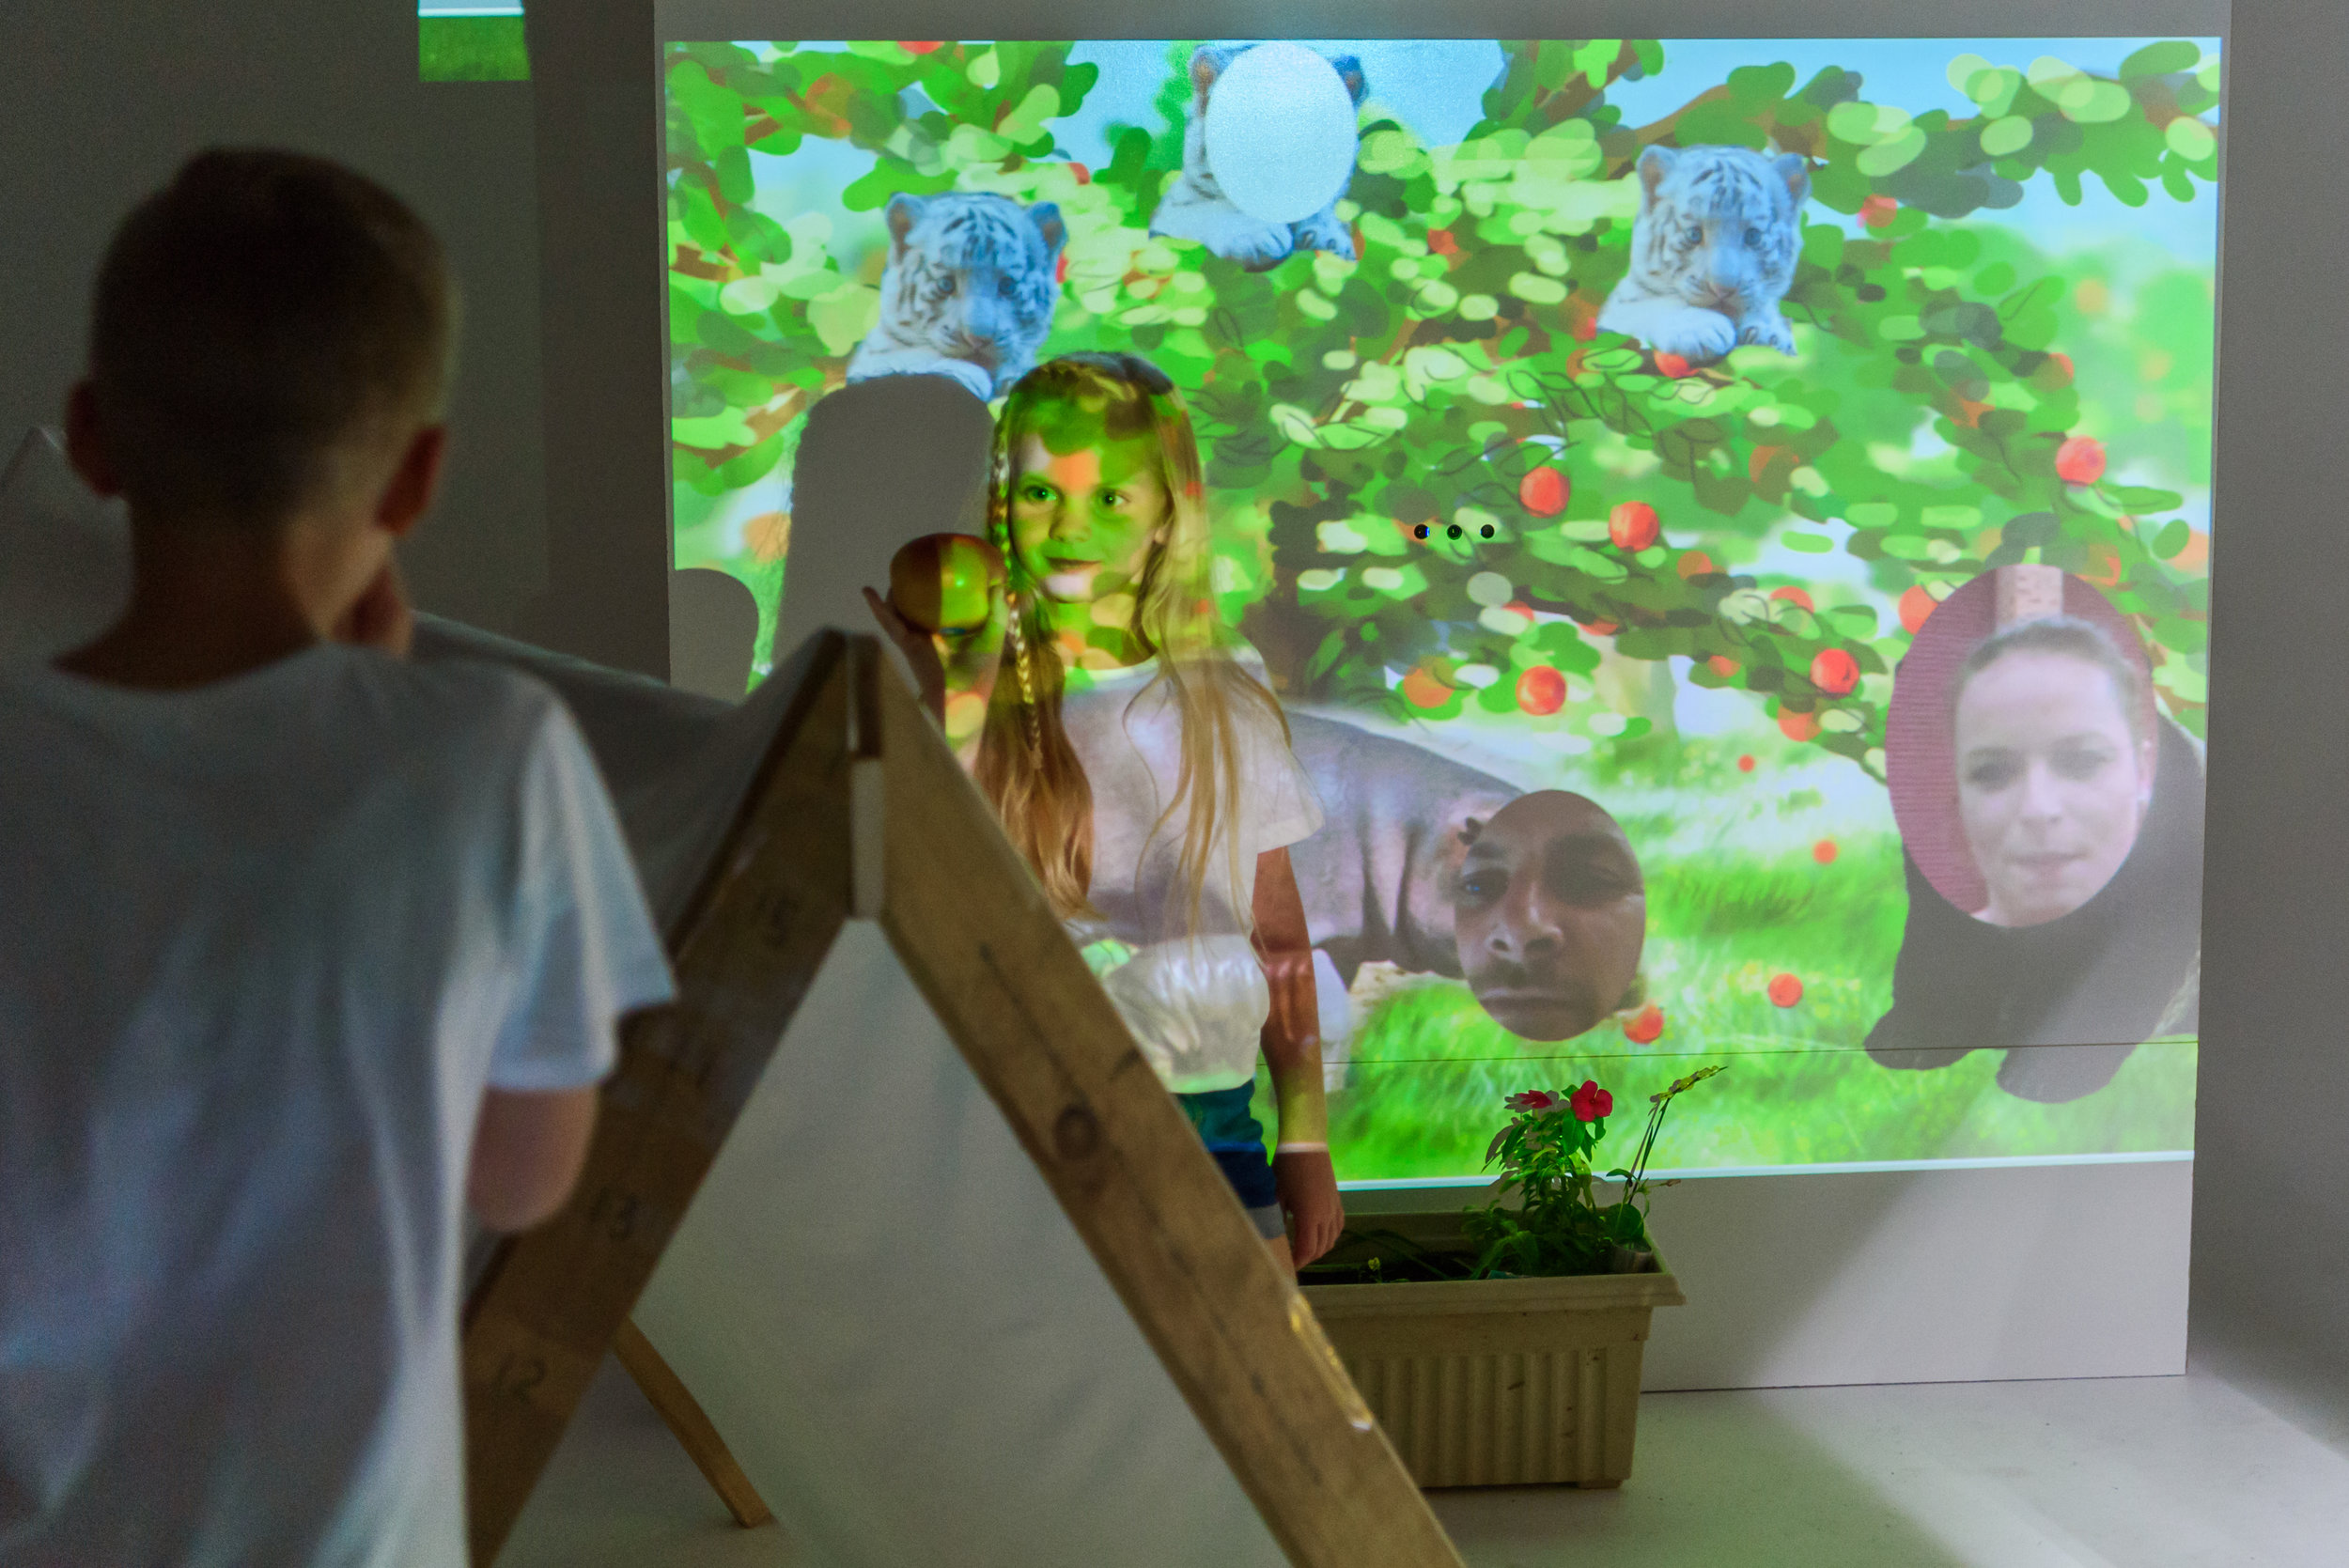 Saskia invited her mother to appear as an apple farmer. It was a natural choice: parents are their children's first and most influential educators.  Like many mothers we interviewed, she also missed both seeing Saskia and role playing in her imaginative stories.